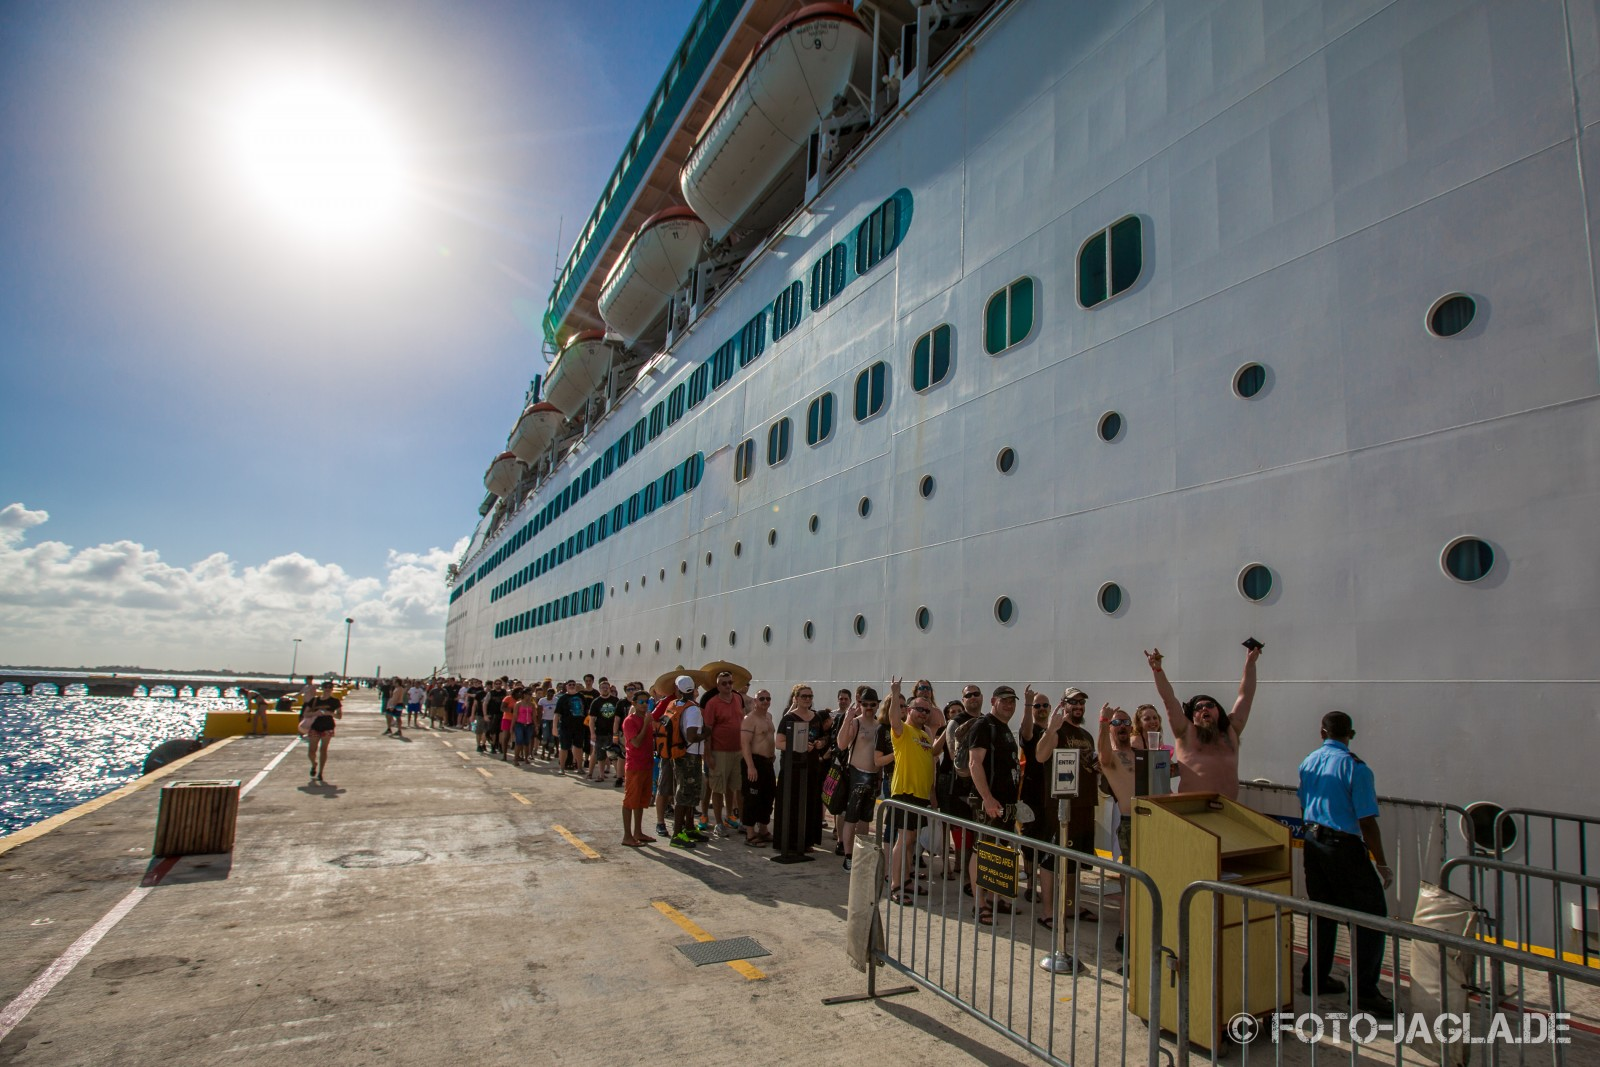 70000 Tons of Metal 2014 ::. Costa Maya, Mexico